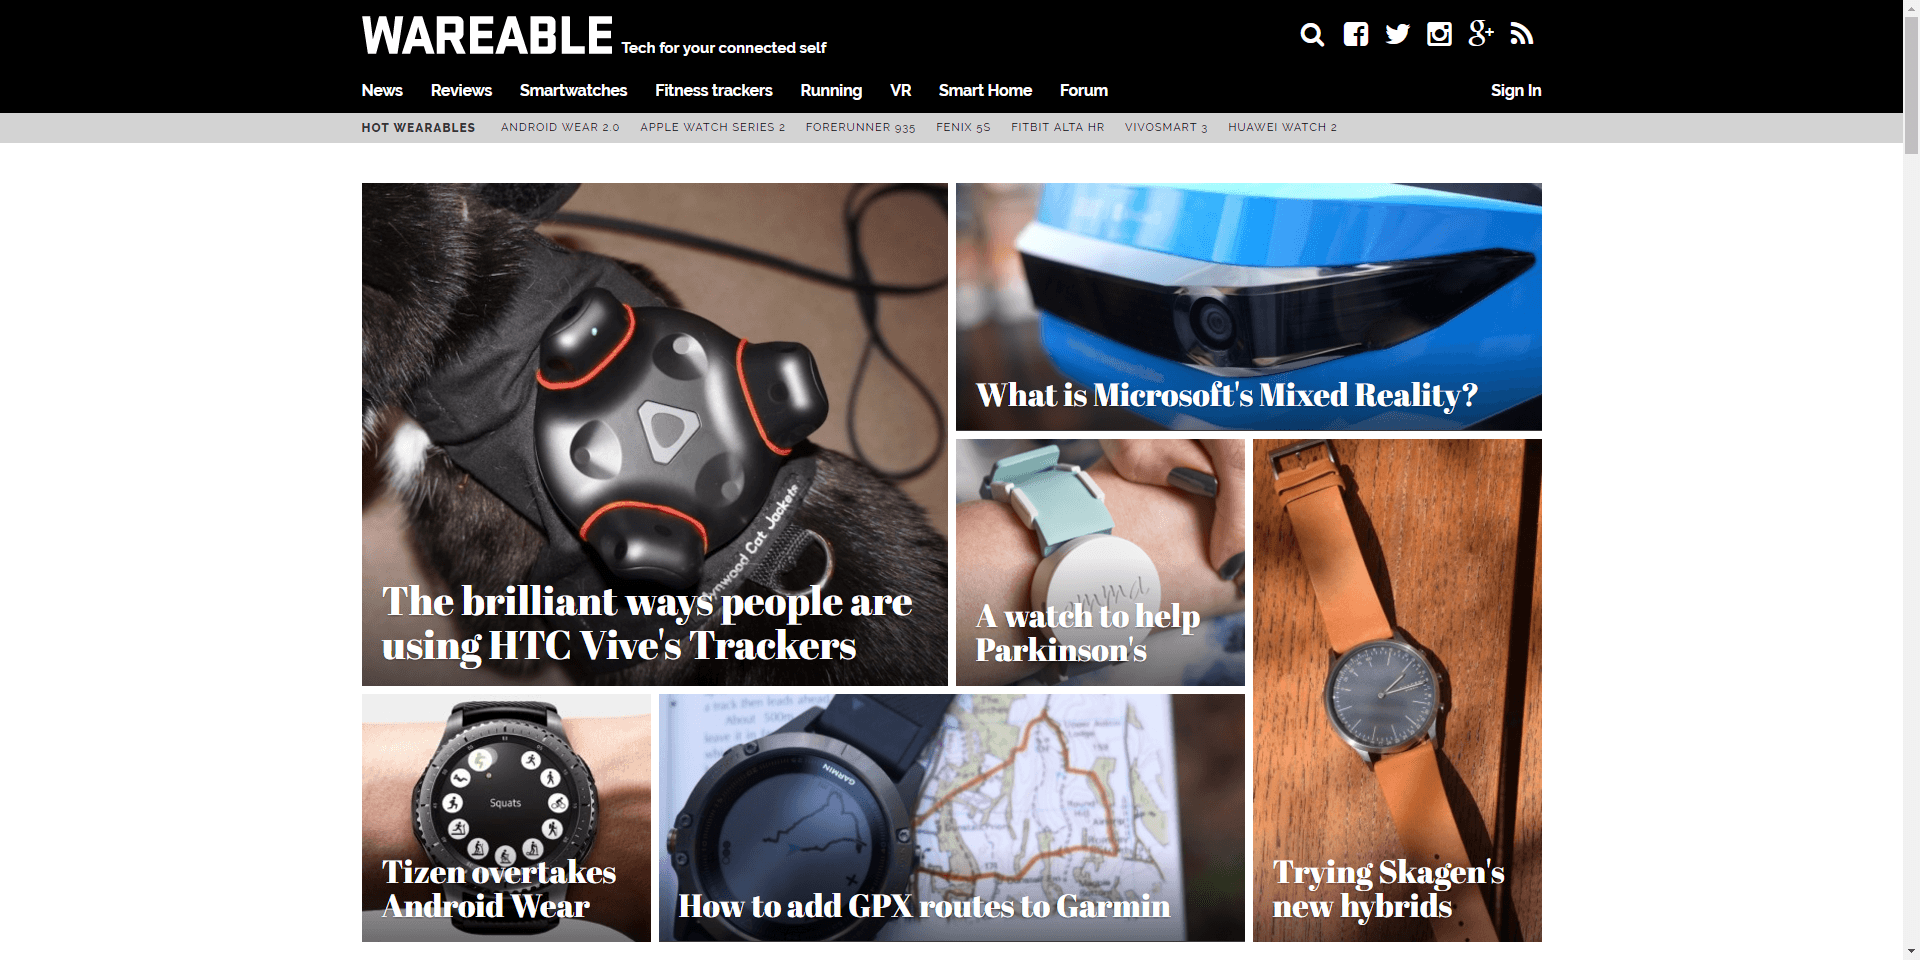 Rebuff Reality featured in wareable.com news article